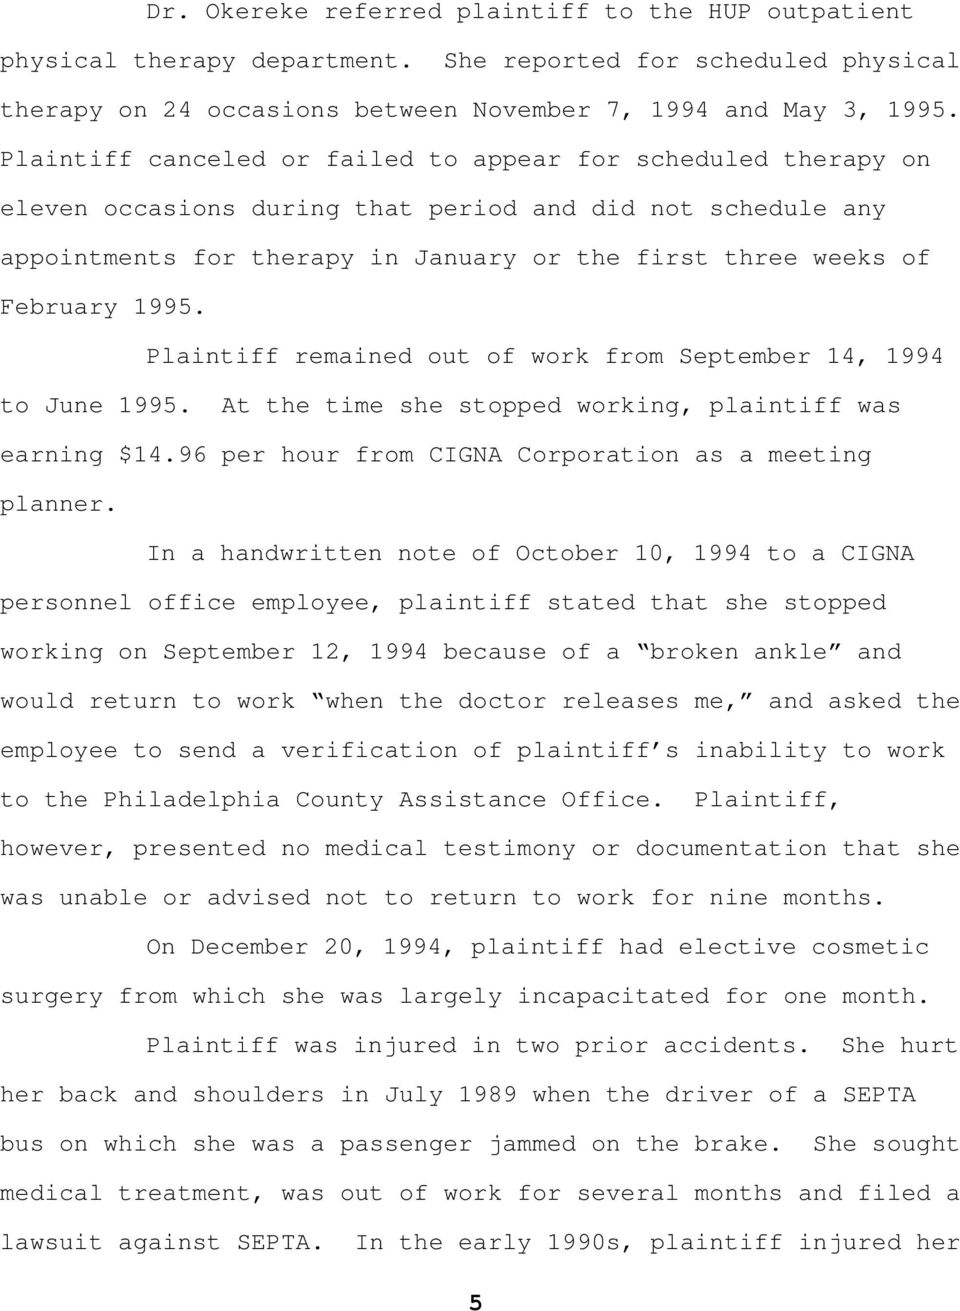 1995. Plaintiff remained out of work from September 14, 1994 to June 1995. At the time she stopped working, plaintiff was earning $14.96 per hour from CIGNA Corporation as a meeting planner.